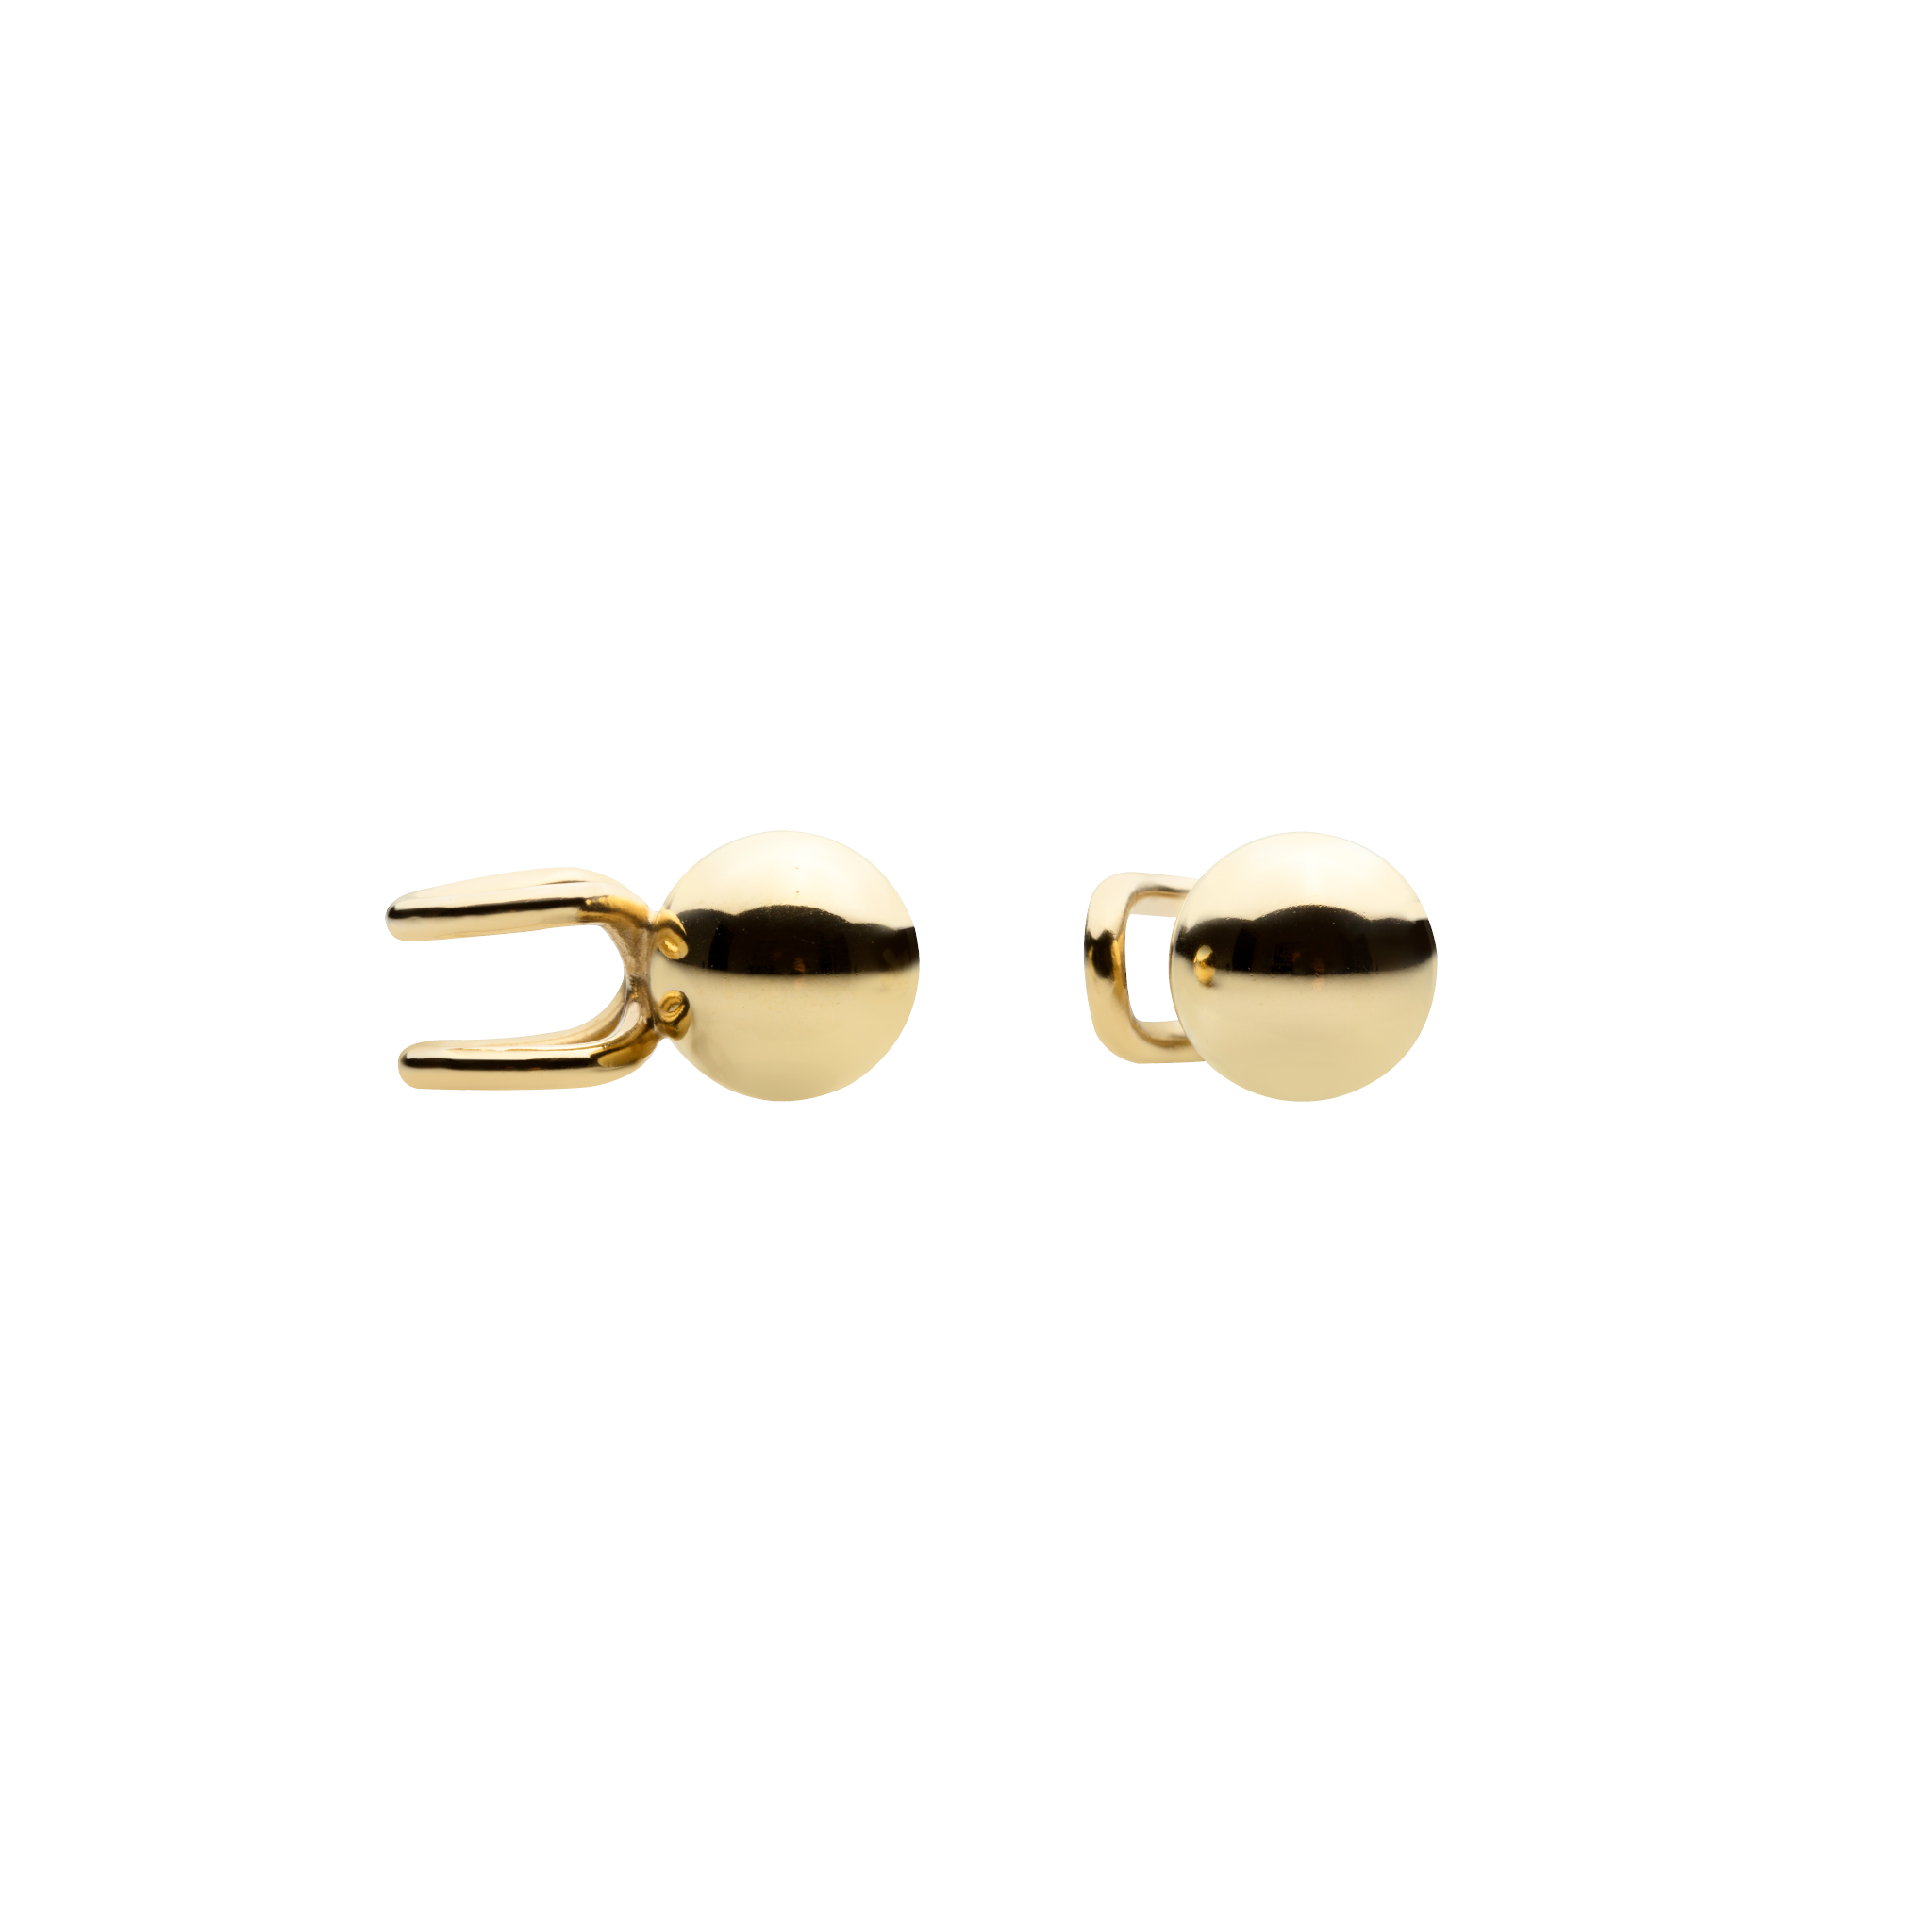 Ball Gold Ear Cuffs - 14K